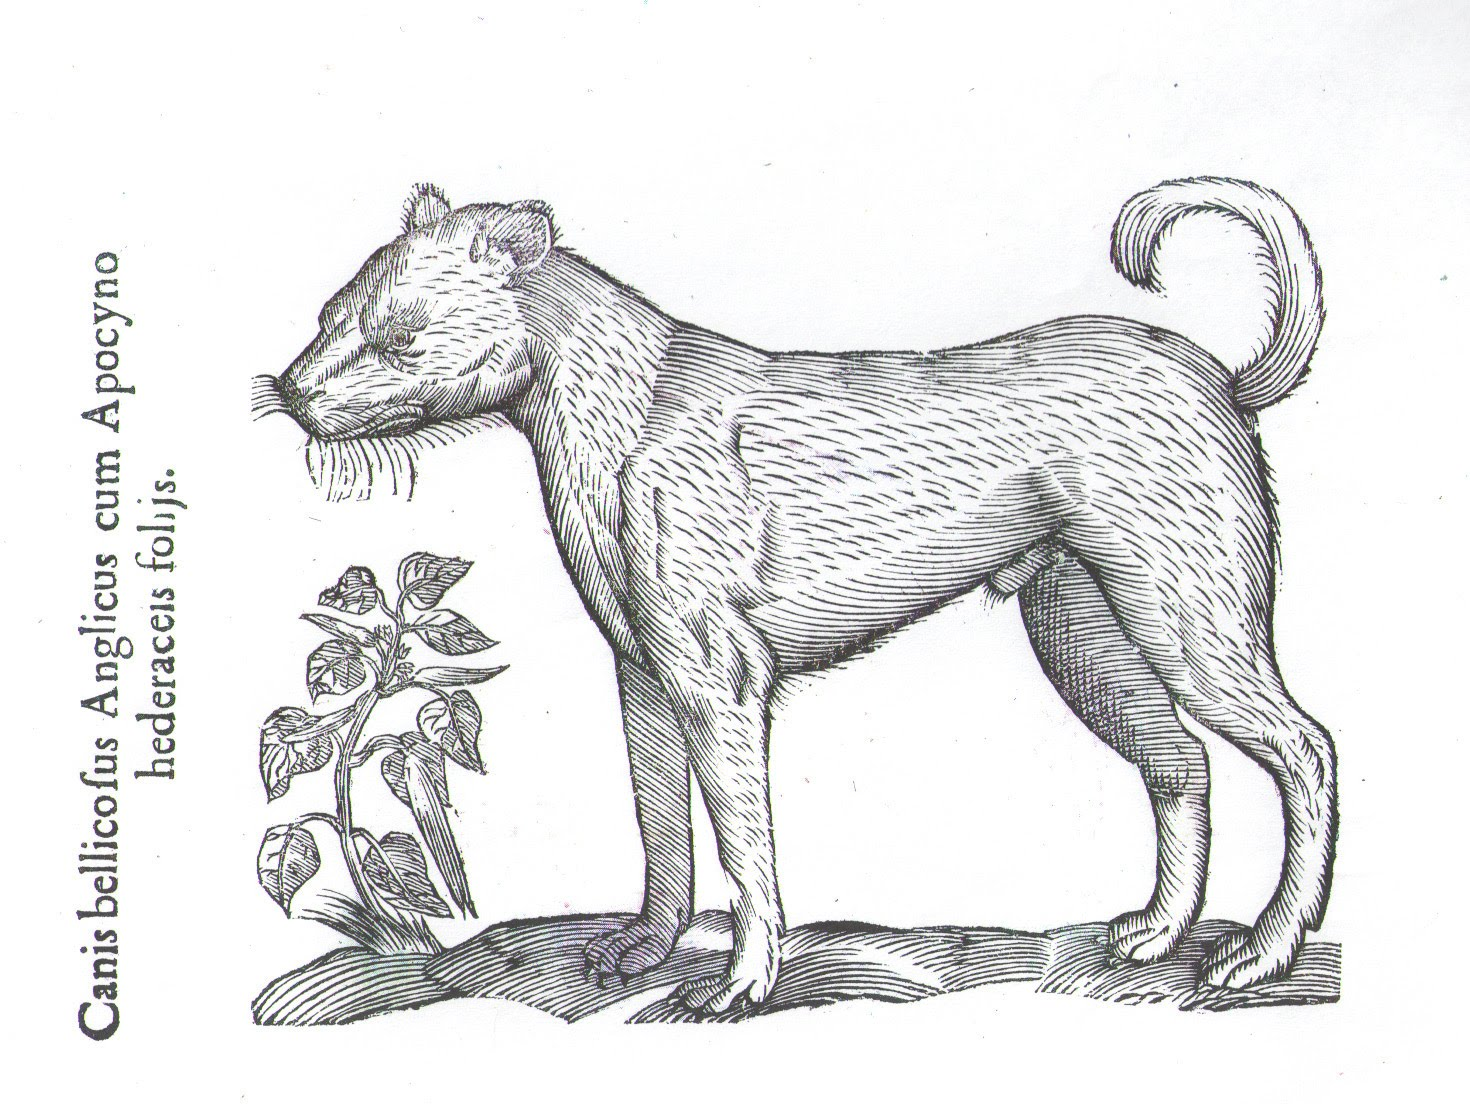 """Canis bellicosus Anglicus – literally translated, """"English war dog,"""" or mastiff, sketched by Aldrovandus (1522-1605)."""